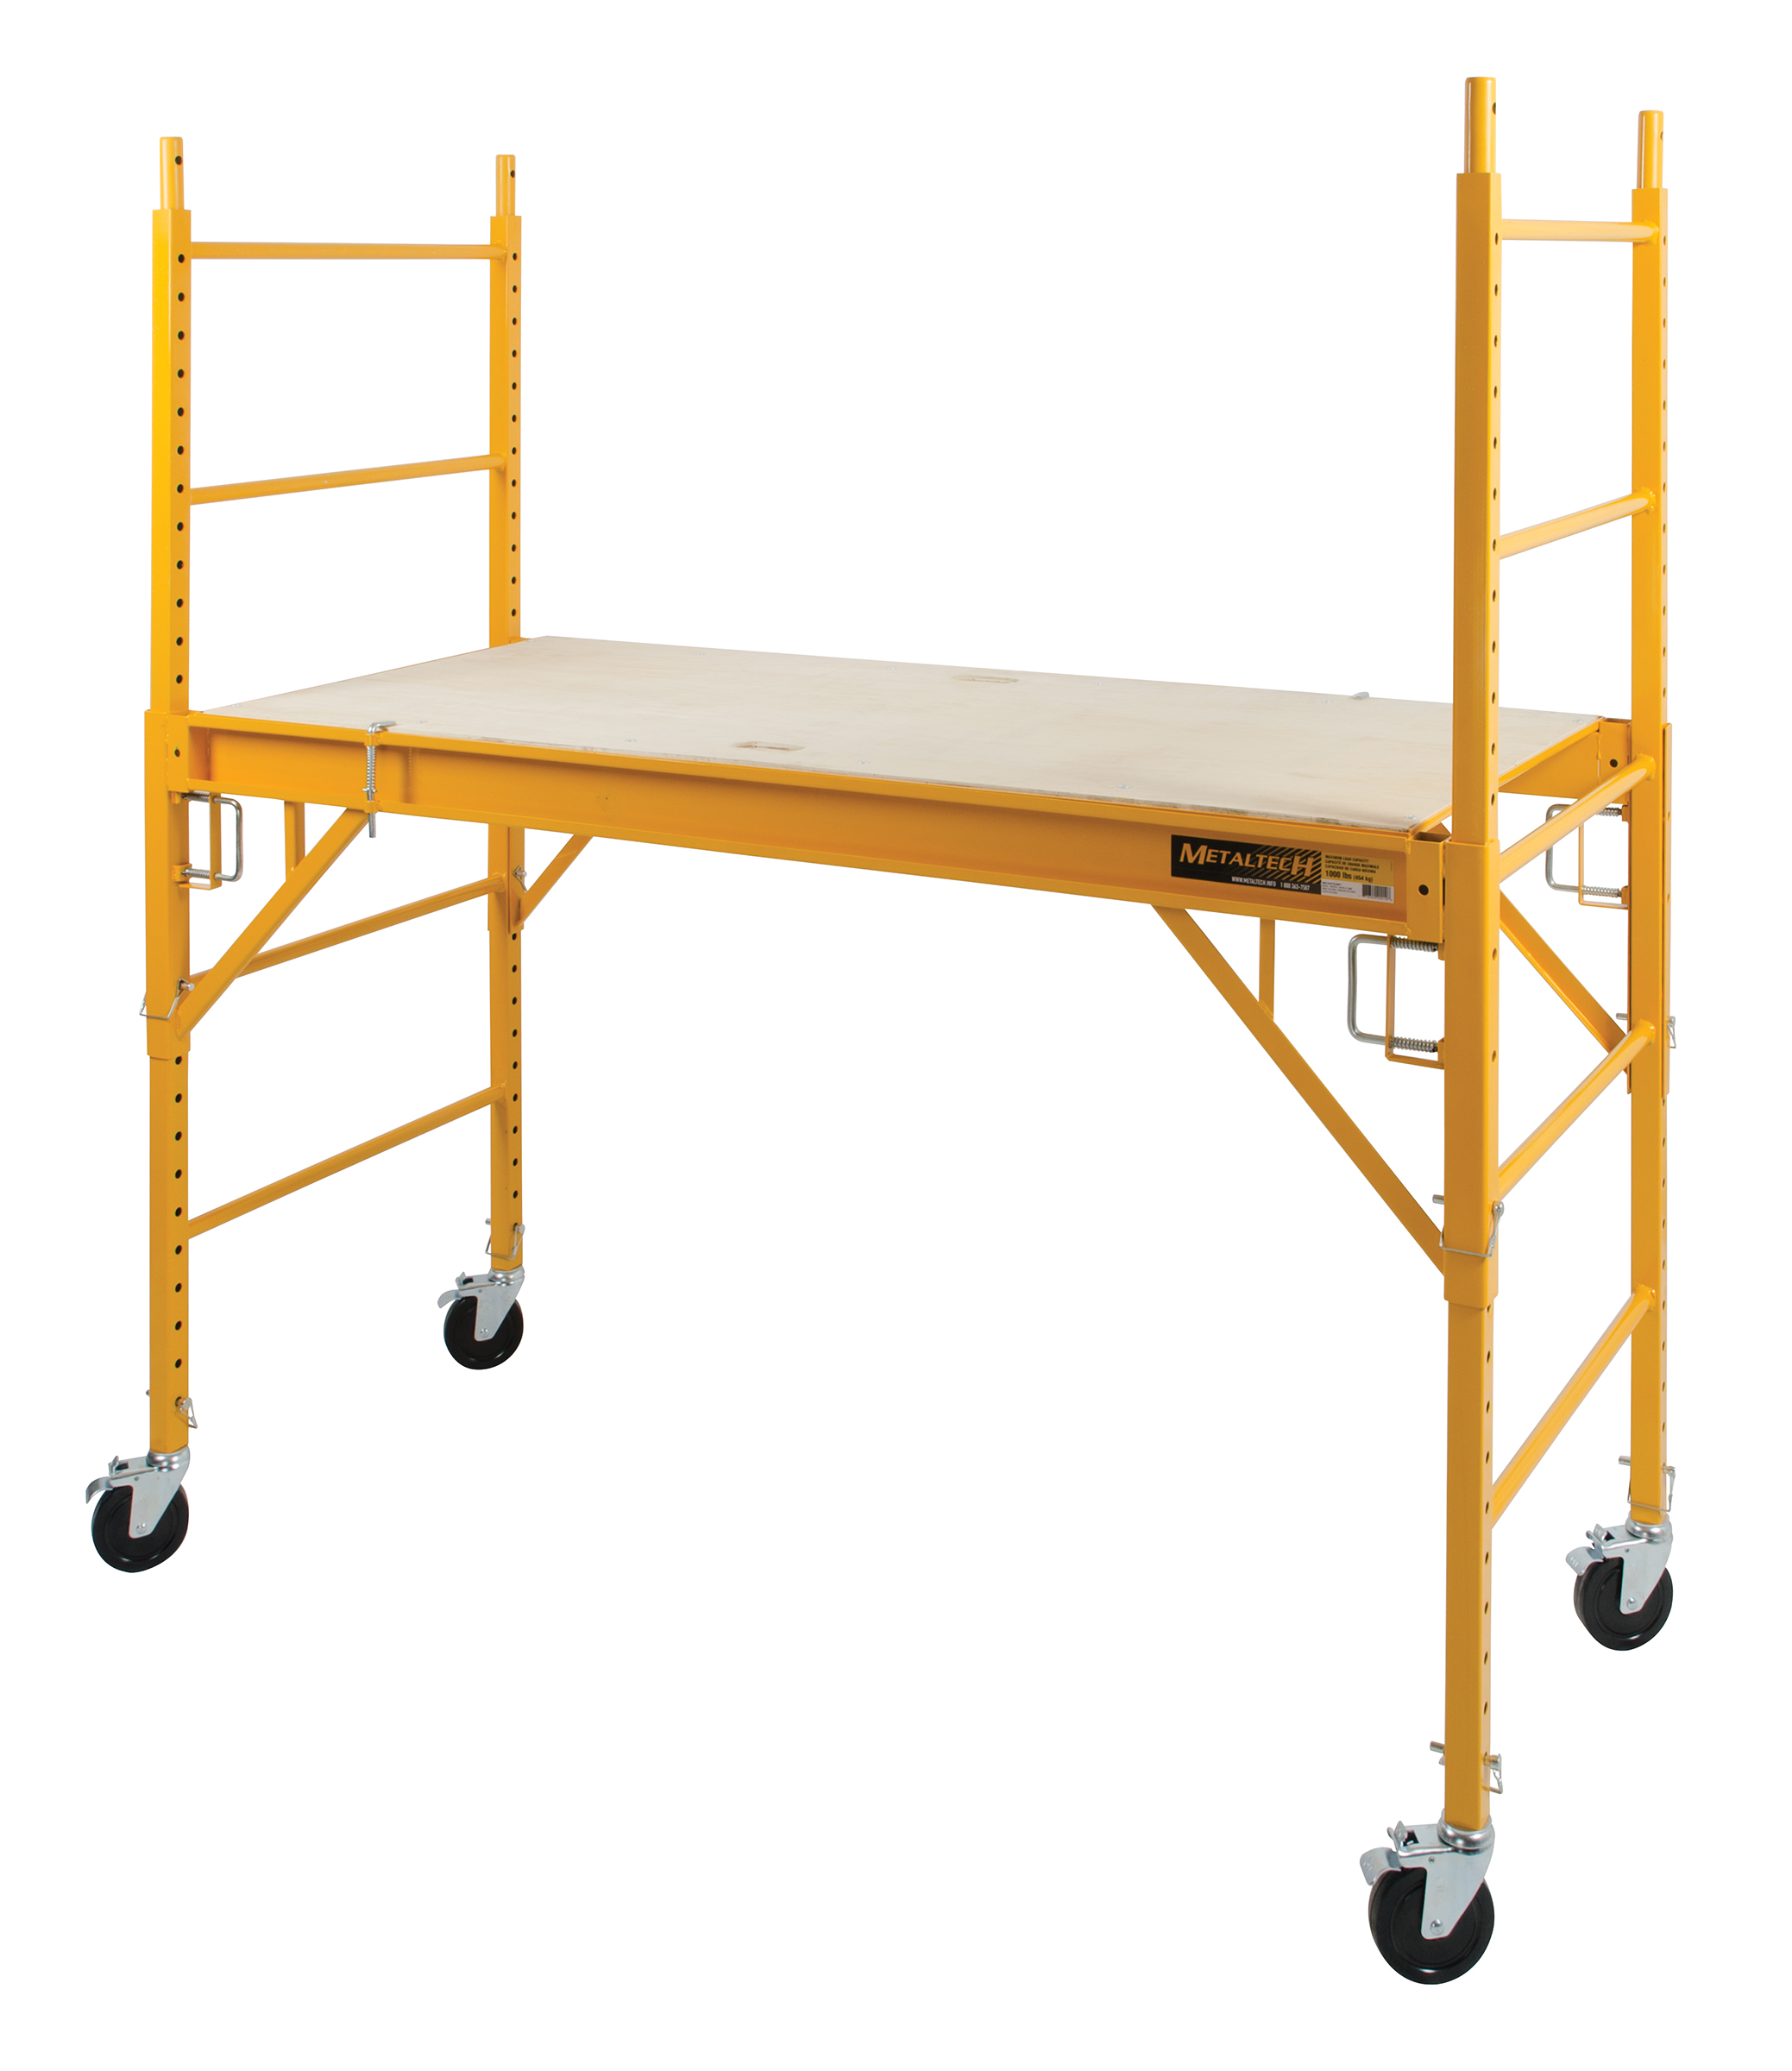 depot interior rental and categories canada fiberglass en ladders tools scaffolding home the